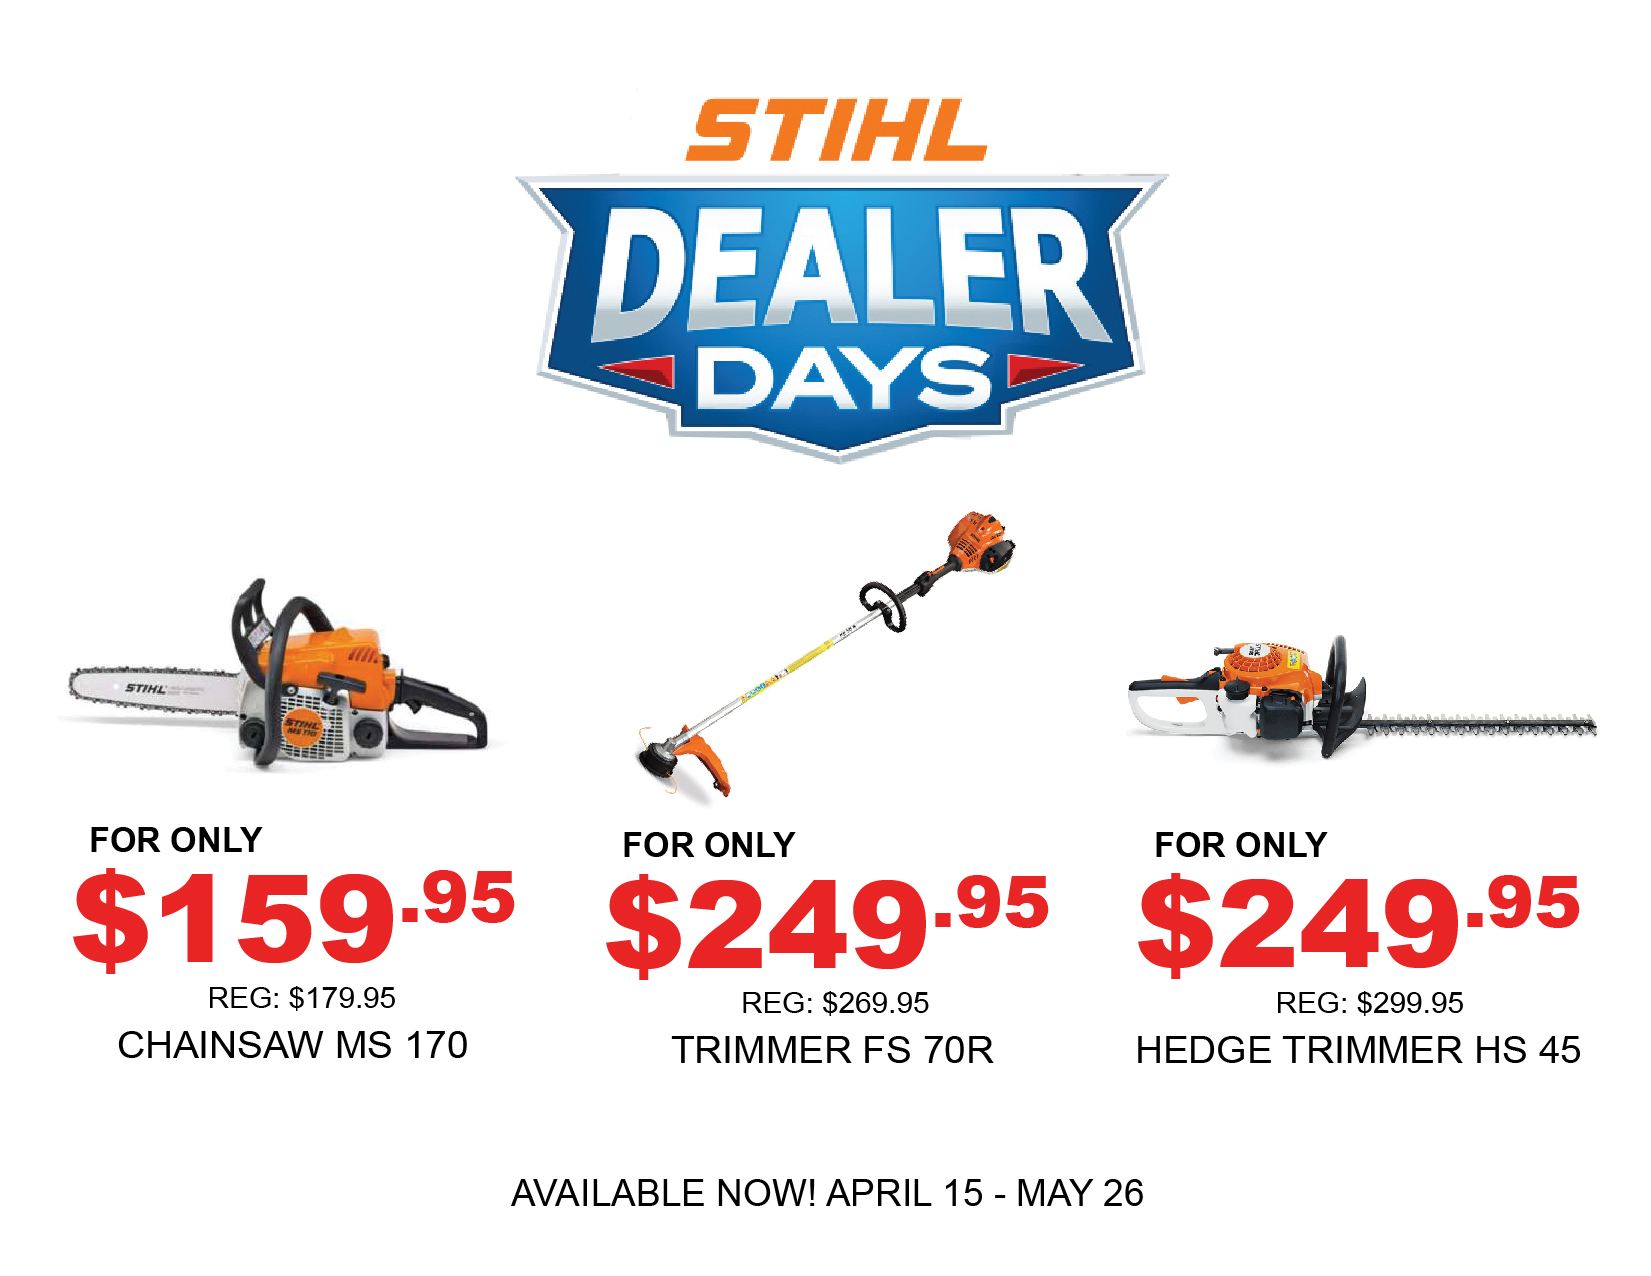 Stihl Trimmers : Lawn Mowers Parts and Service, YOUR POWER